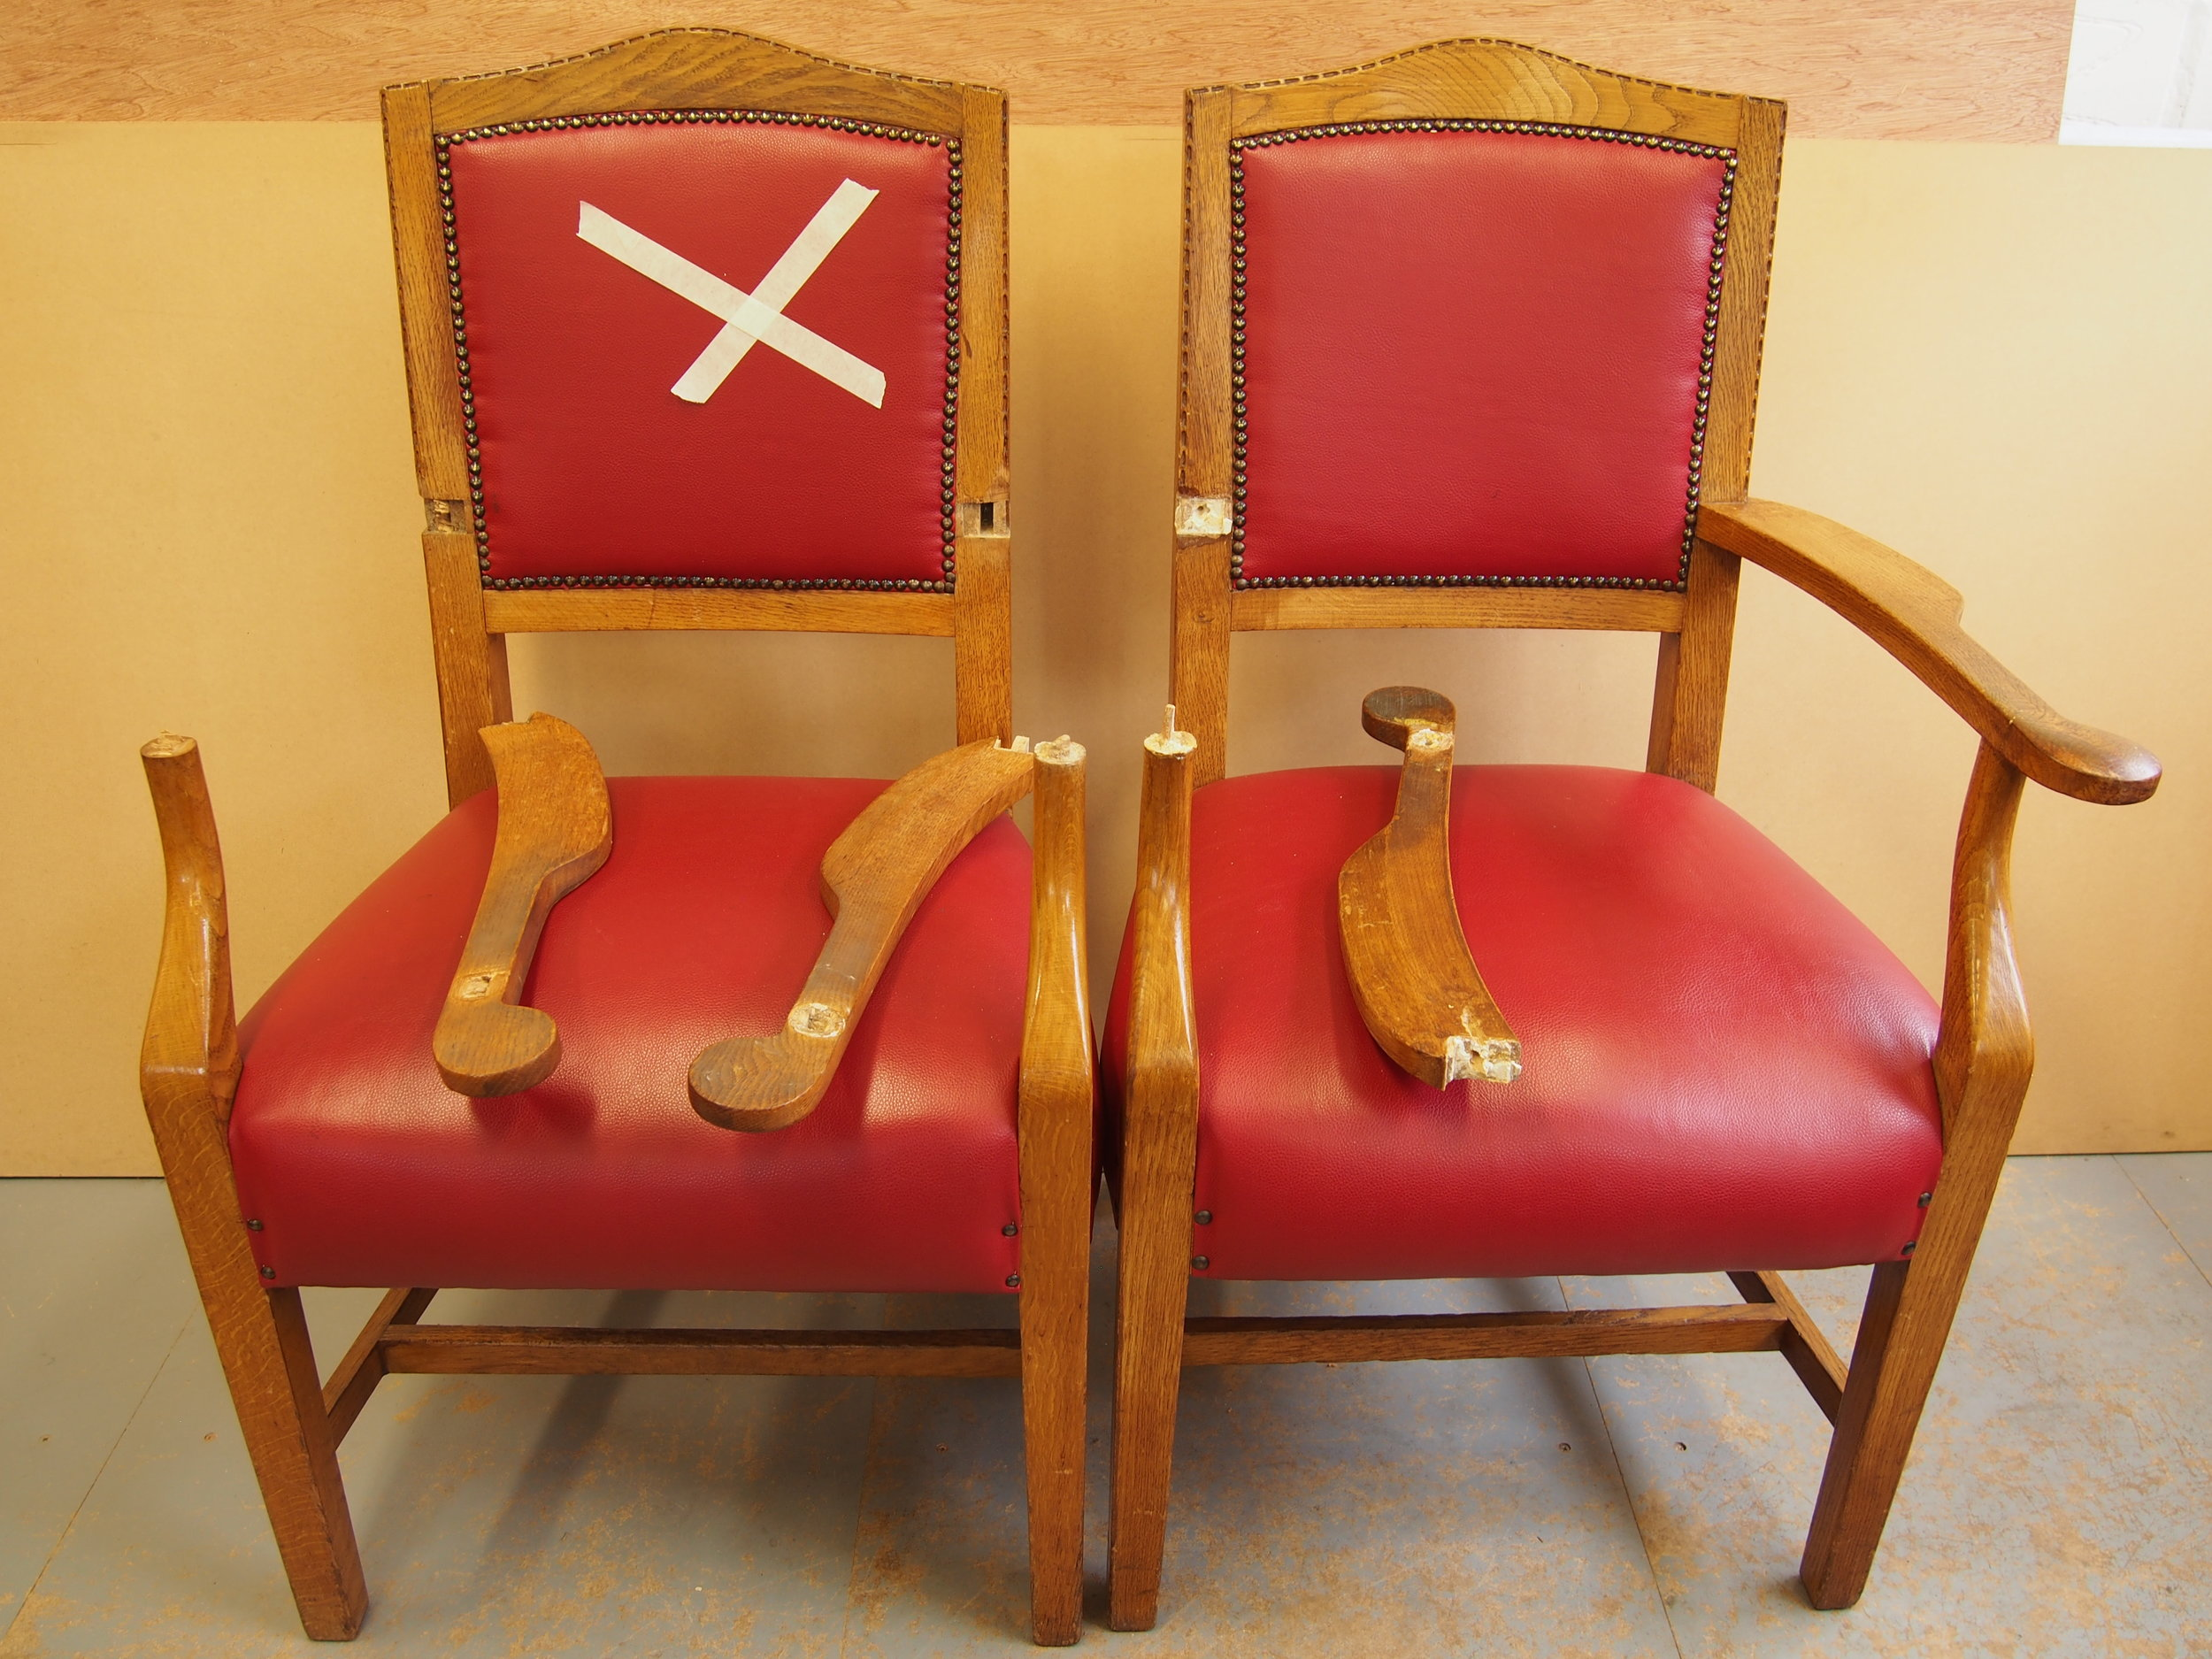 Before Restoration of Oak Conference Arm Chairs   The original condition of two Oak Conference Arm Chairs from a set of eight, had broken arm rests and joints.